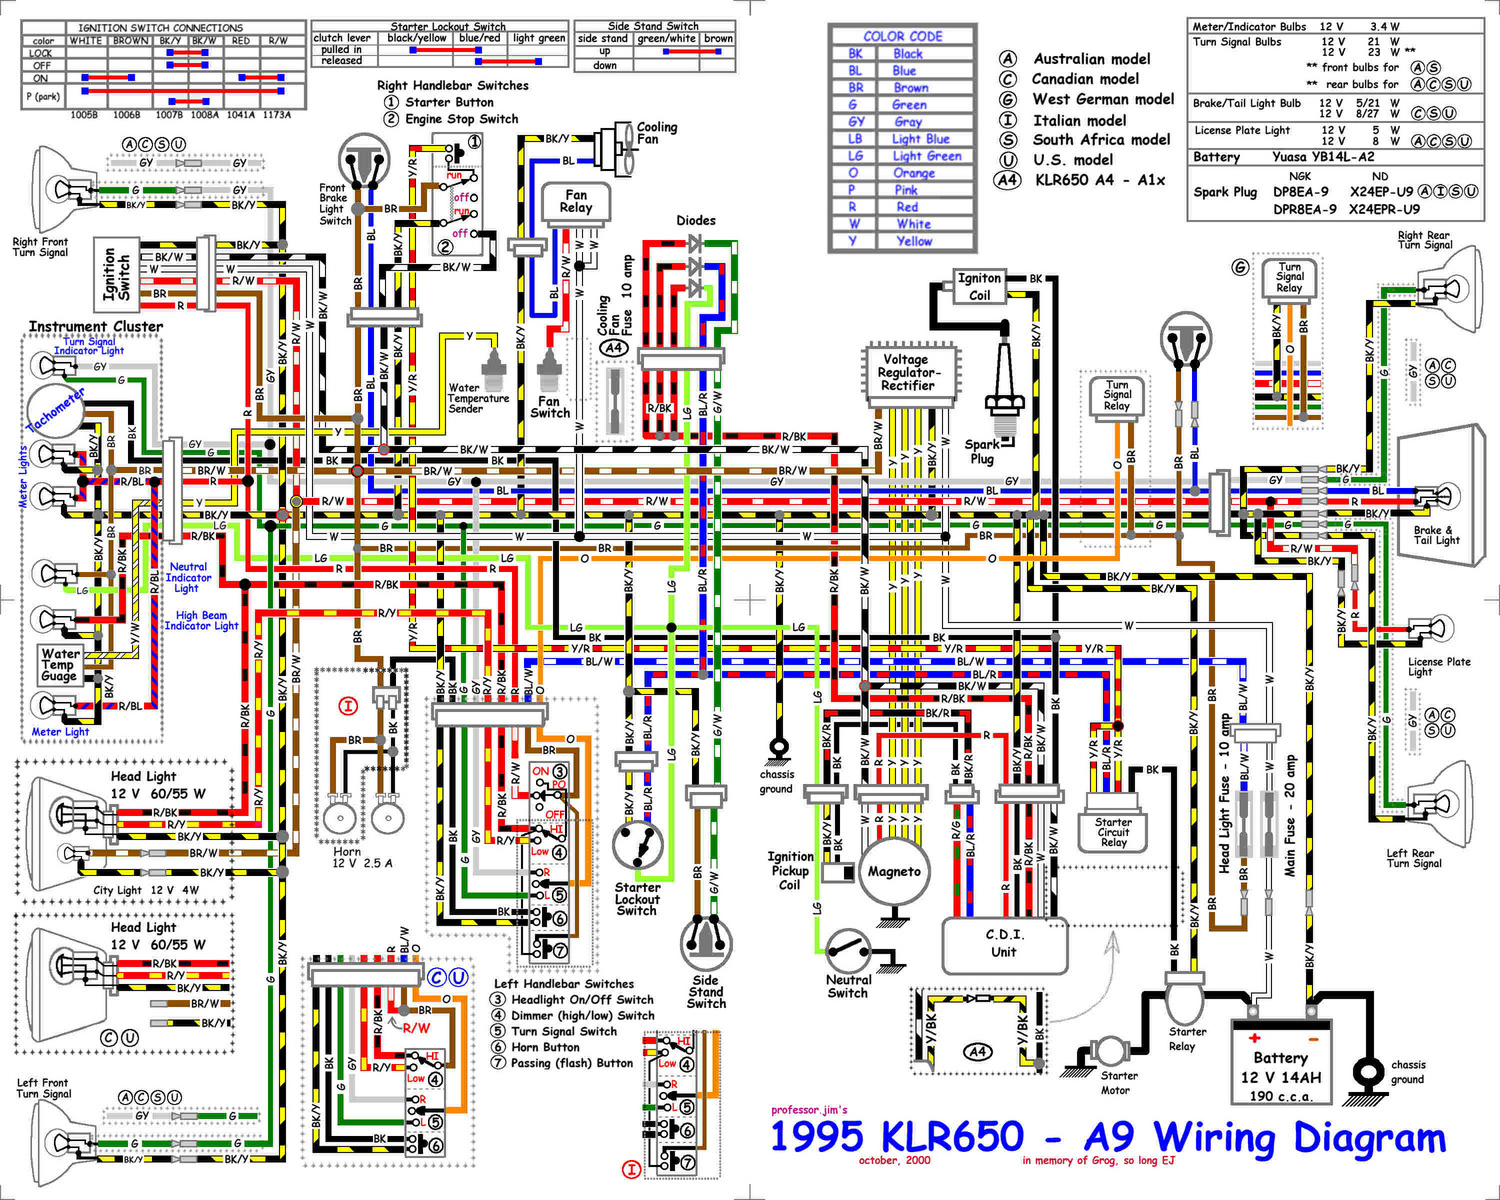 3aeb5 2007 honda odyssey engine wiring diagram | wiring library  deadpool.bybeau.co